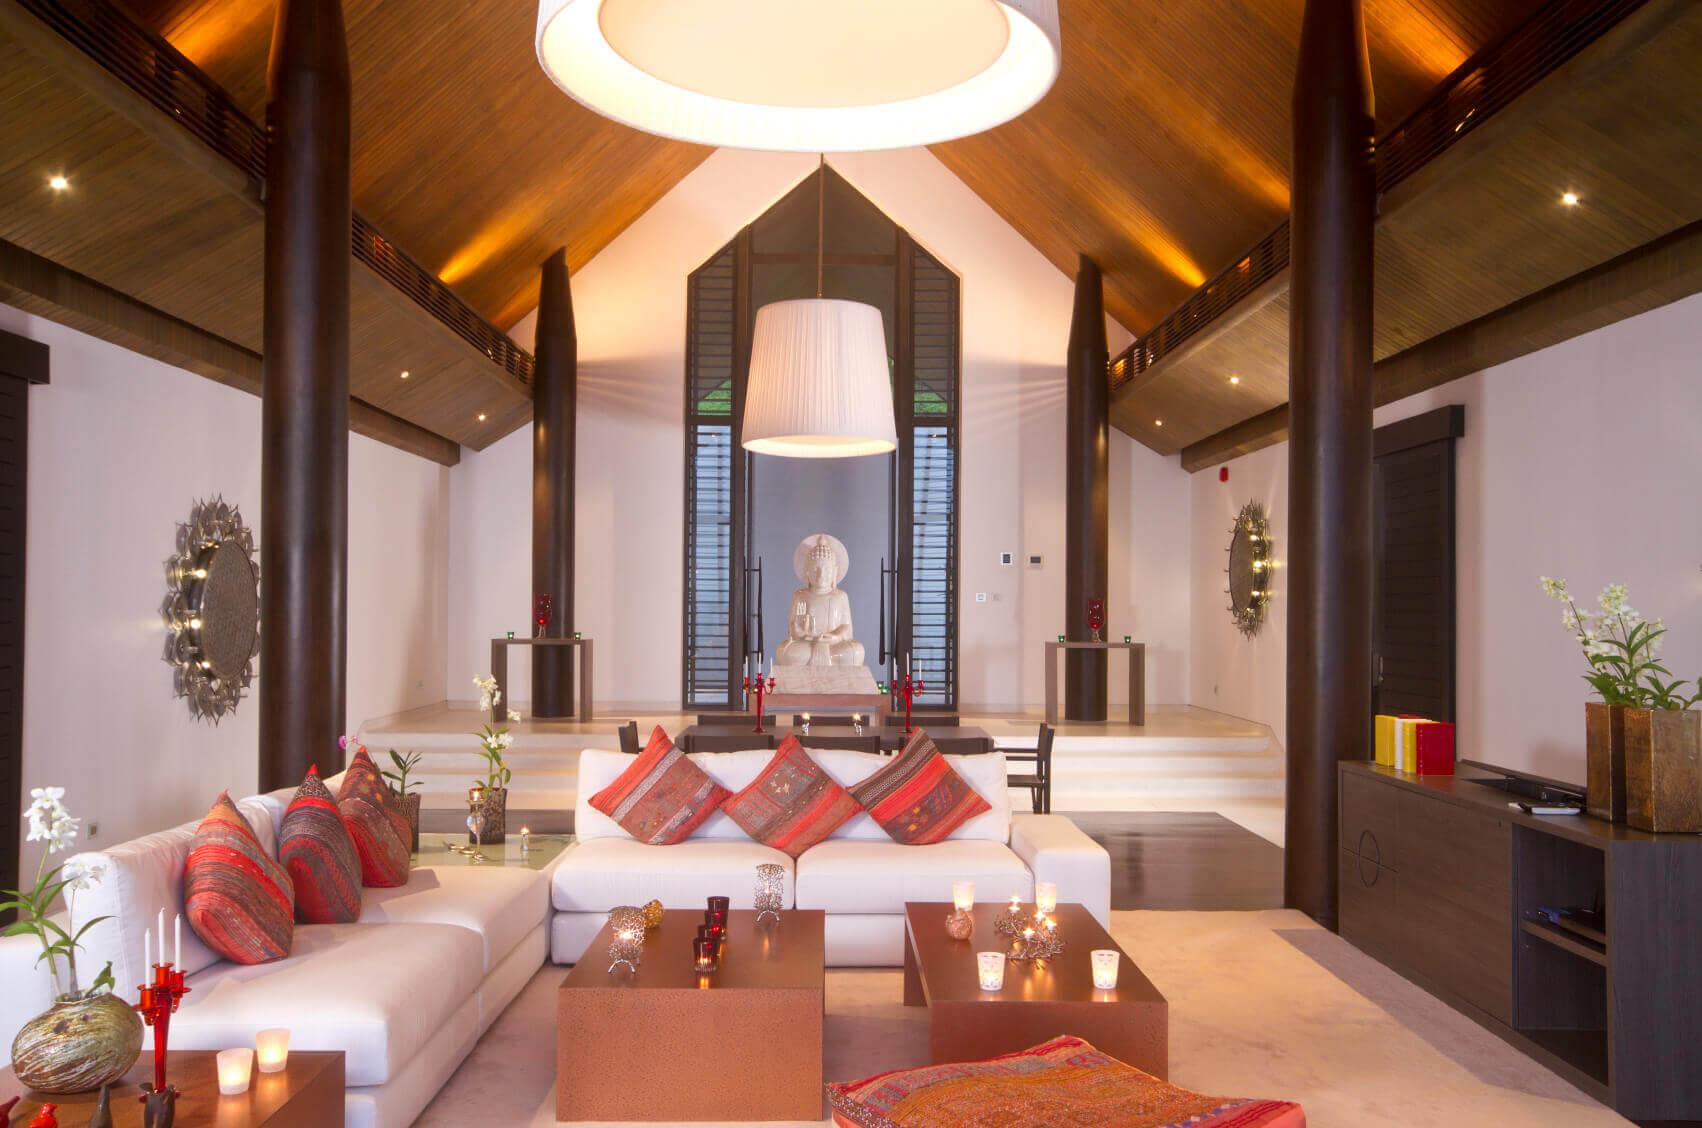 Asian living rooms with for construction pillars, sloped ceiling, white L shaped sofa with multiple red pillows. In the center there is a Buddha statue. Small light spots that light up the ceiling.